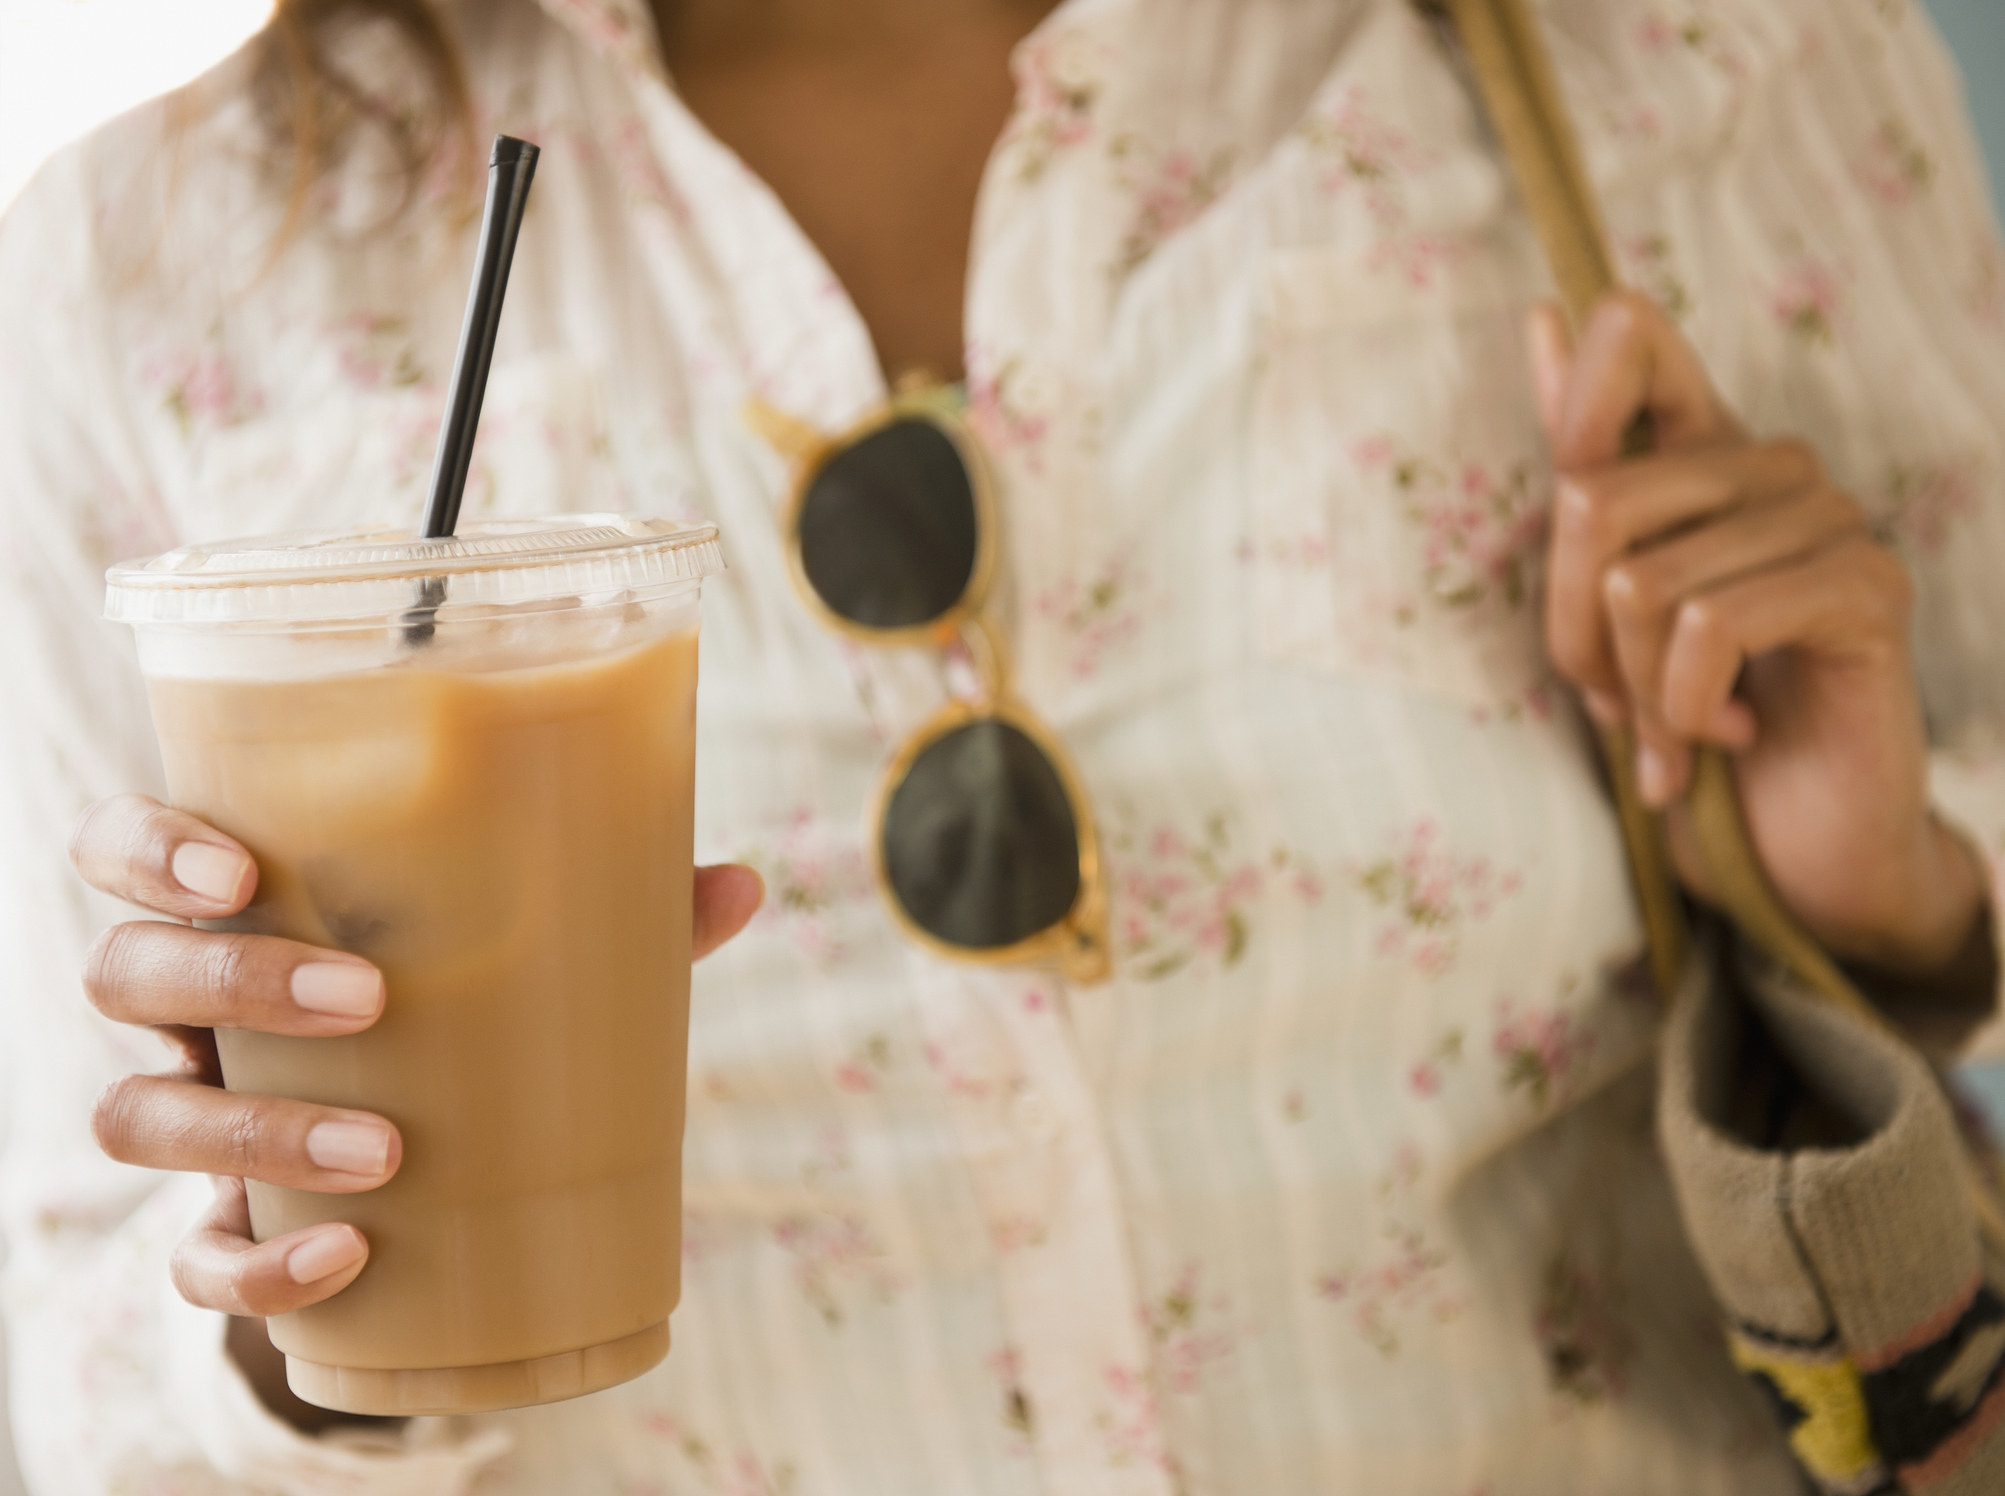 A woman holding an iced coffee drink